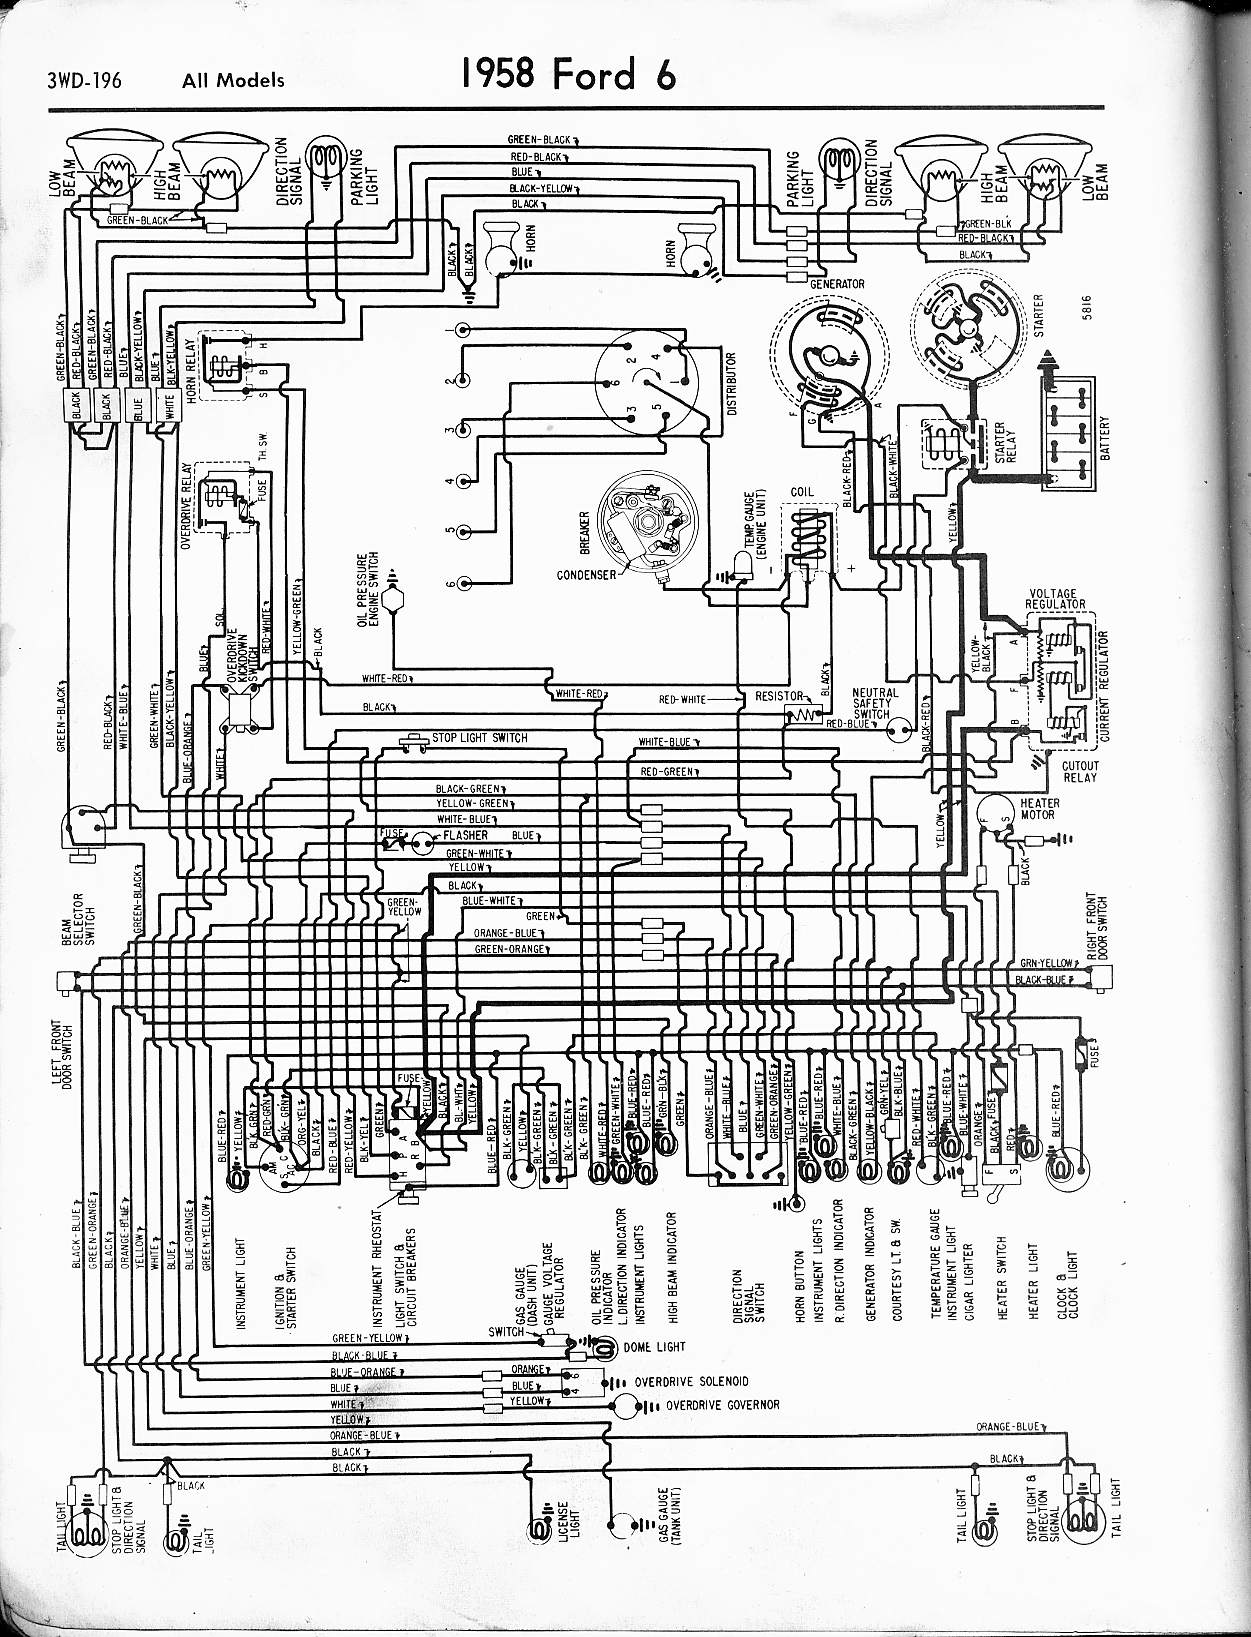 57 65 ford wiring diagrams 1966 ford truck fuel tank 1958 6 cyl all models